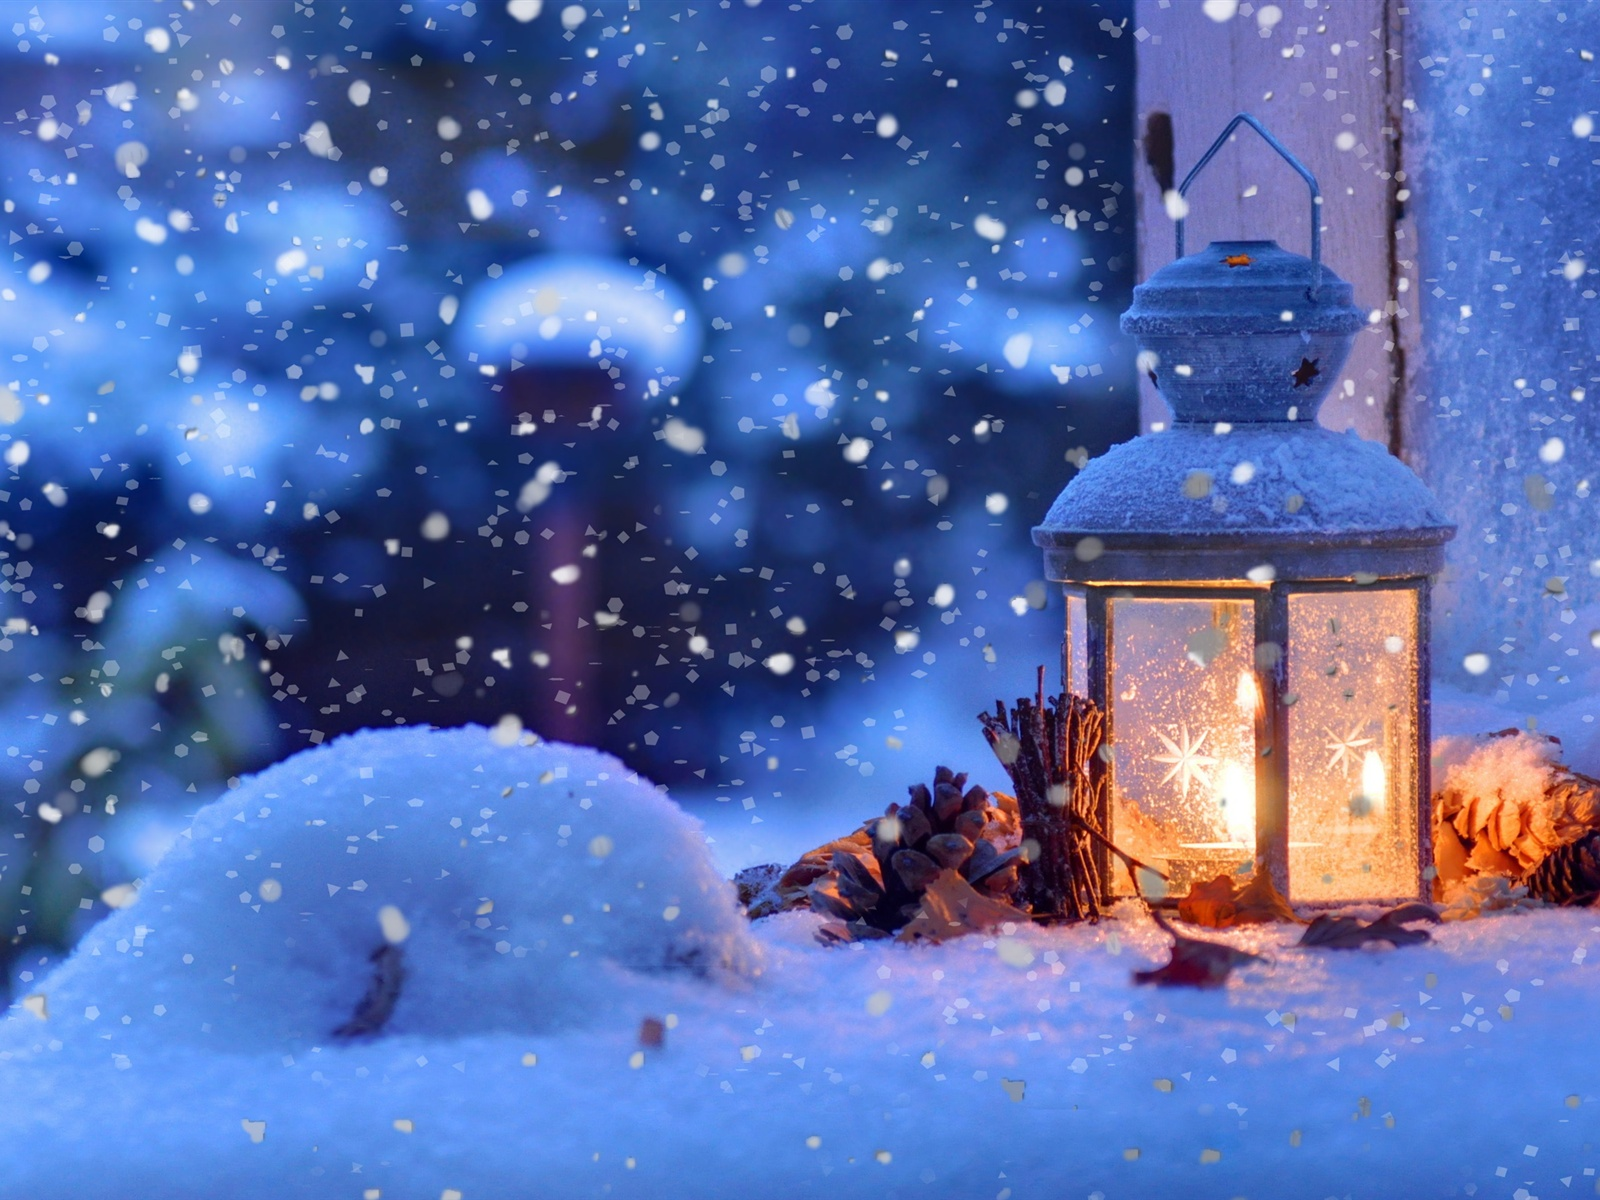 Weihnachtsbilder Download.Christmas Snow Winter Light Snowflakes 750x1334 Iphone 8 7 6 6s